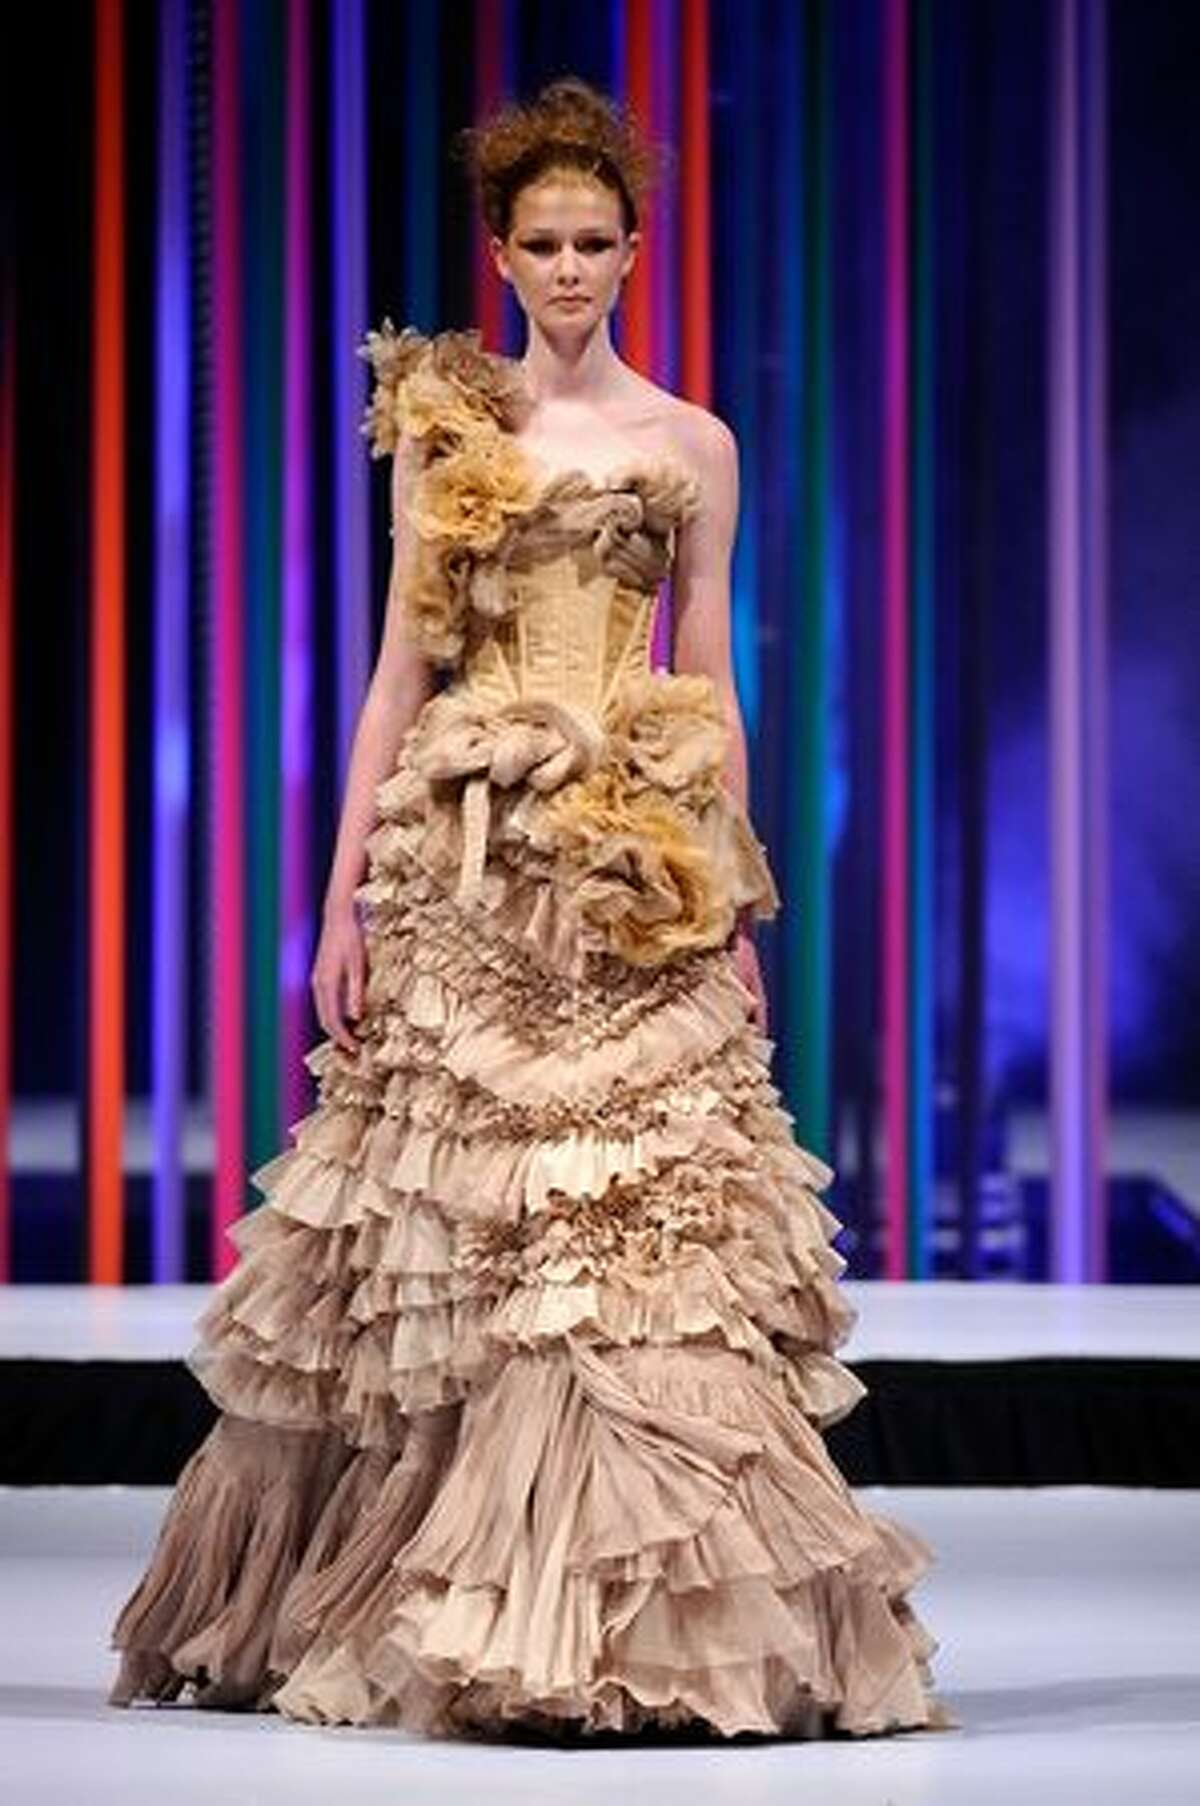 A model showcases a design by Aurelio Costarella on the catwalk during the StyleAid Perth Fashion Event 2010 at the Burswood Entertainment Complex in Perth, Australia.